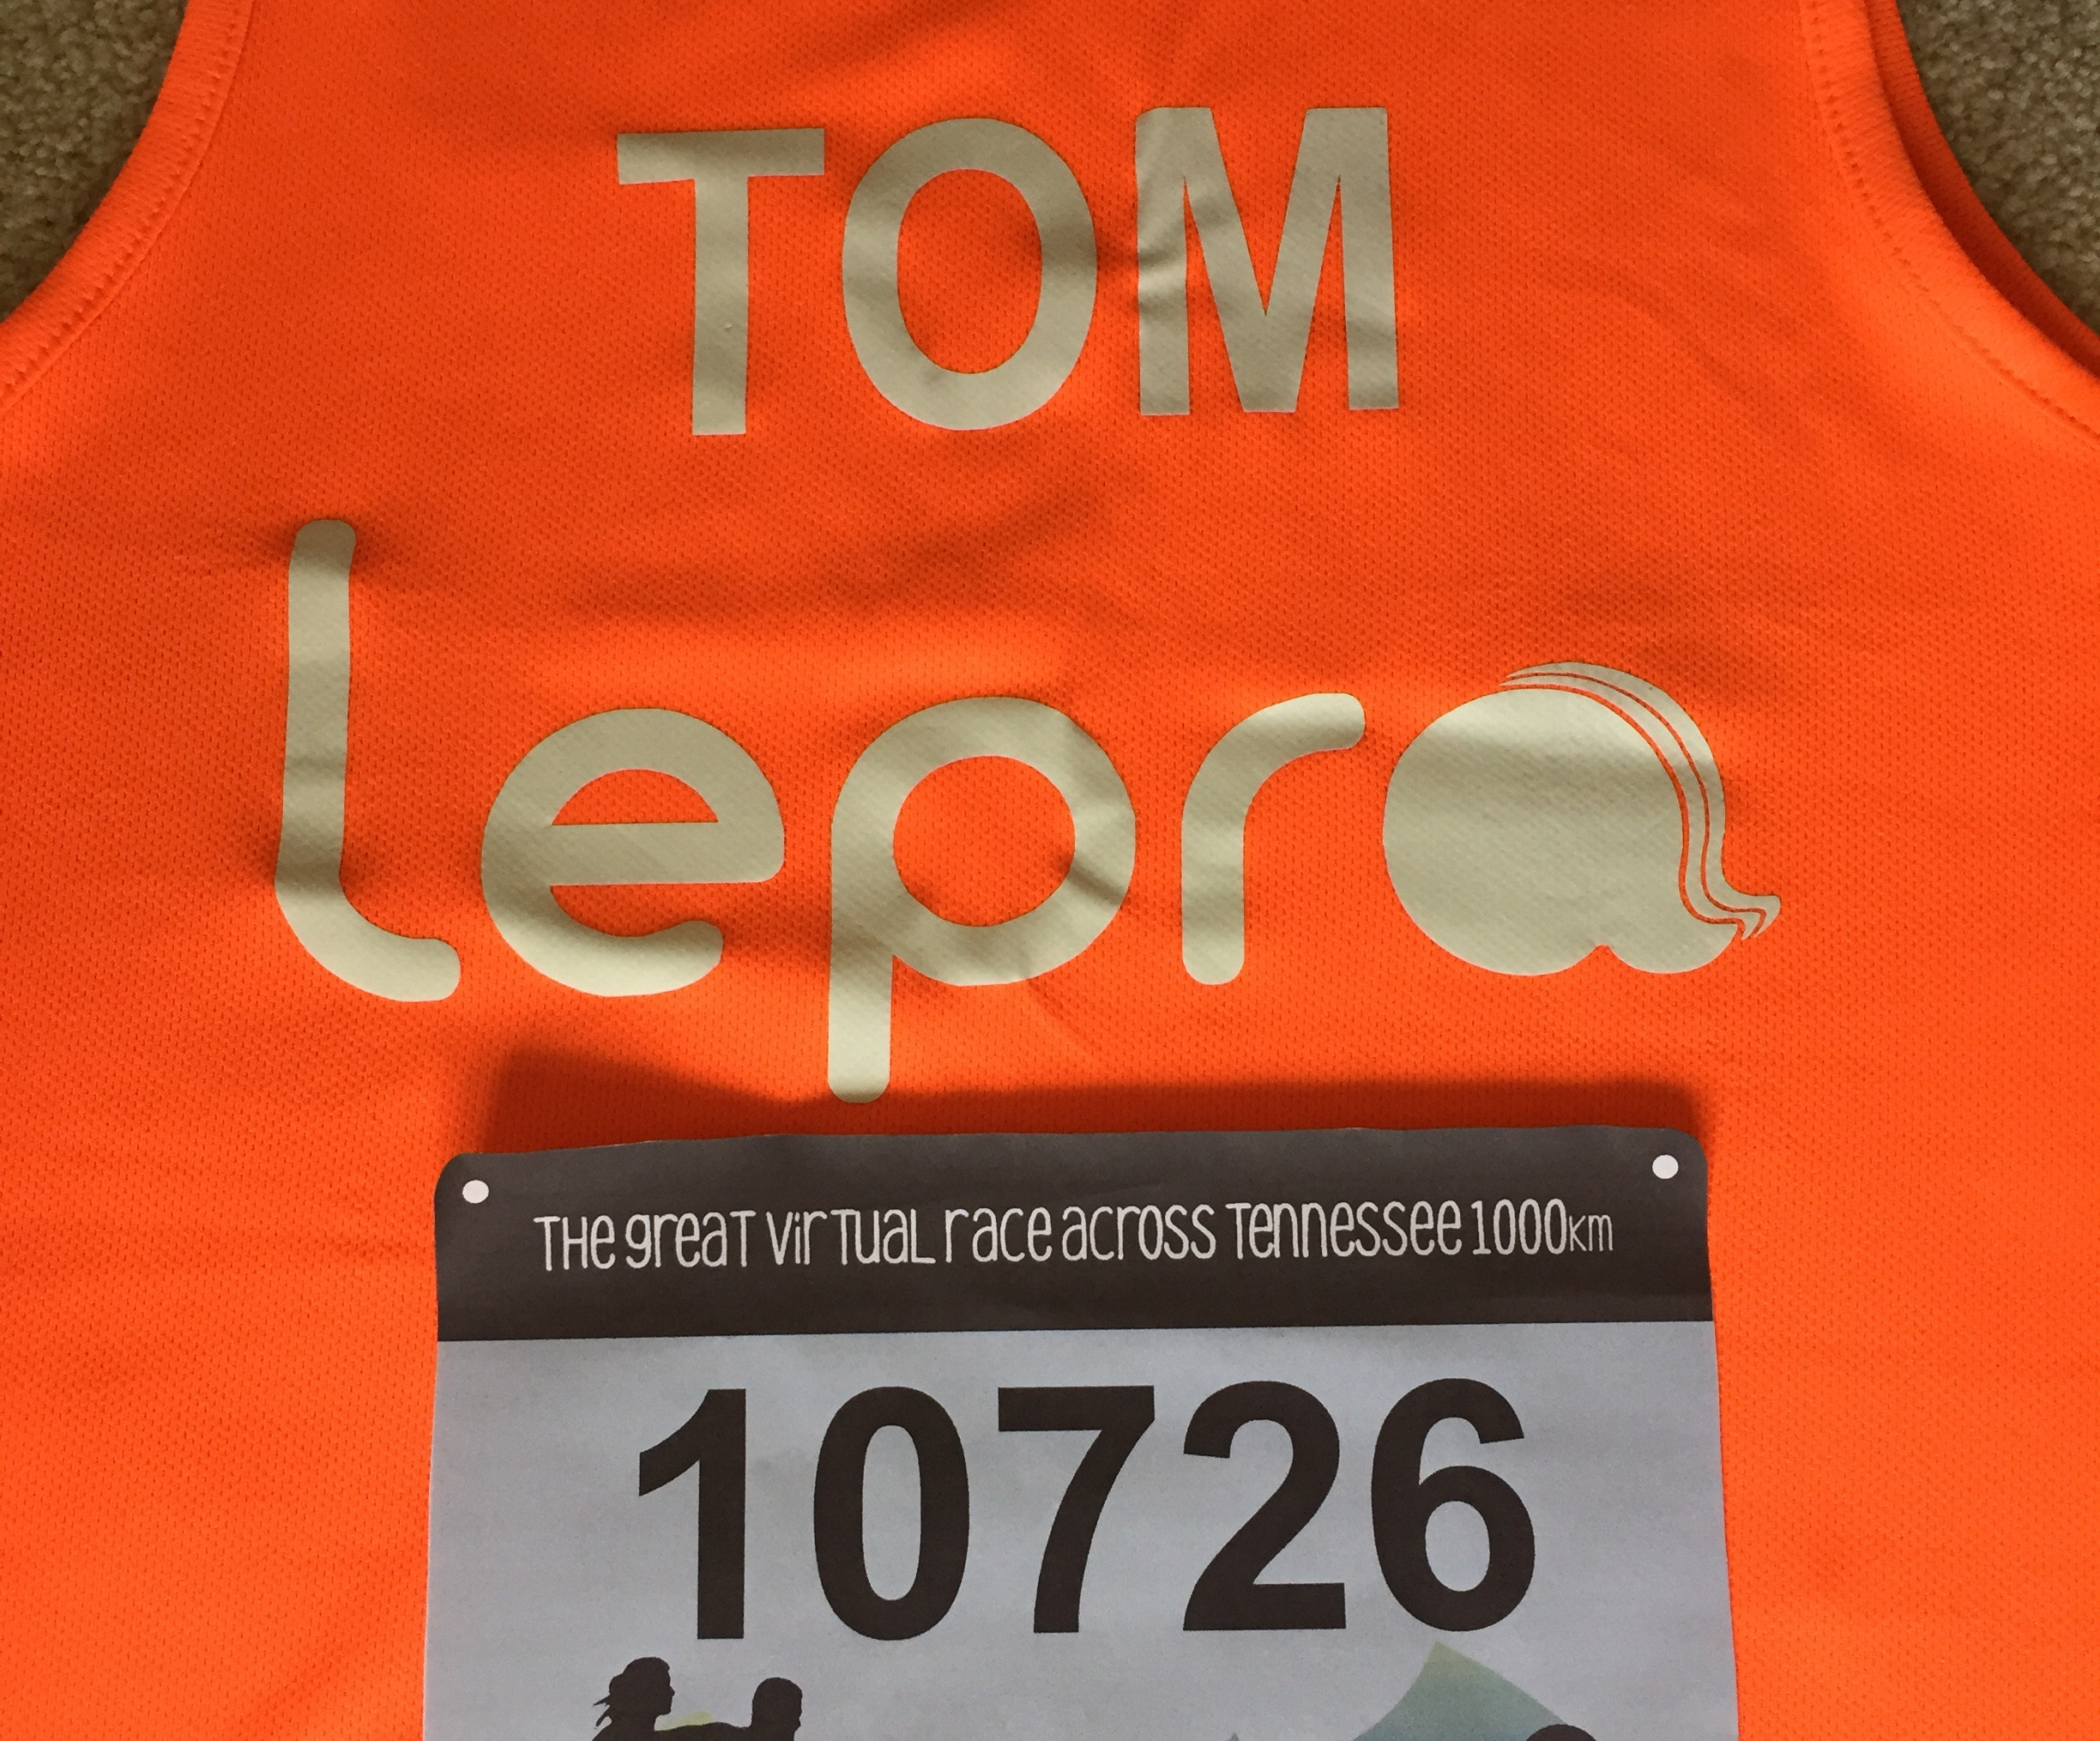 Tom's vest and label